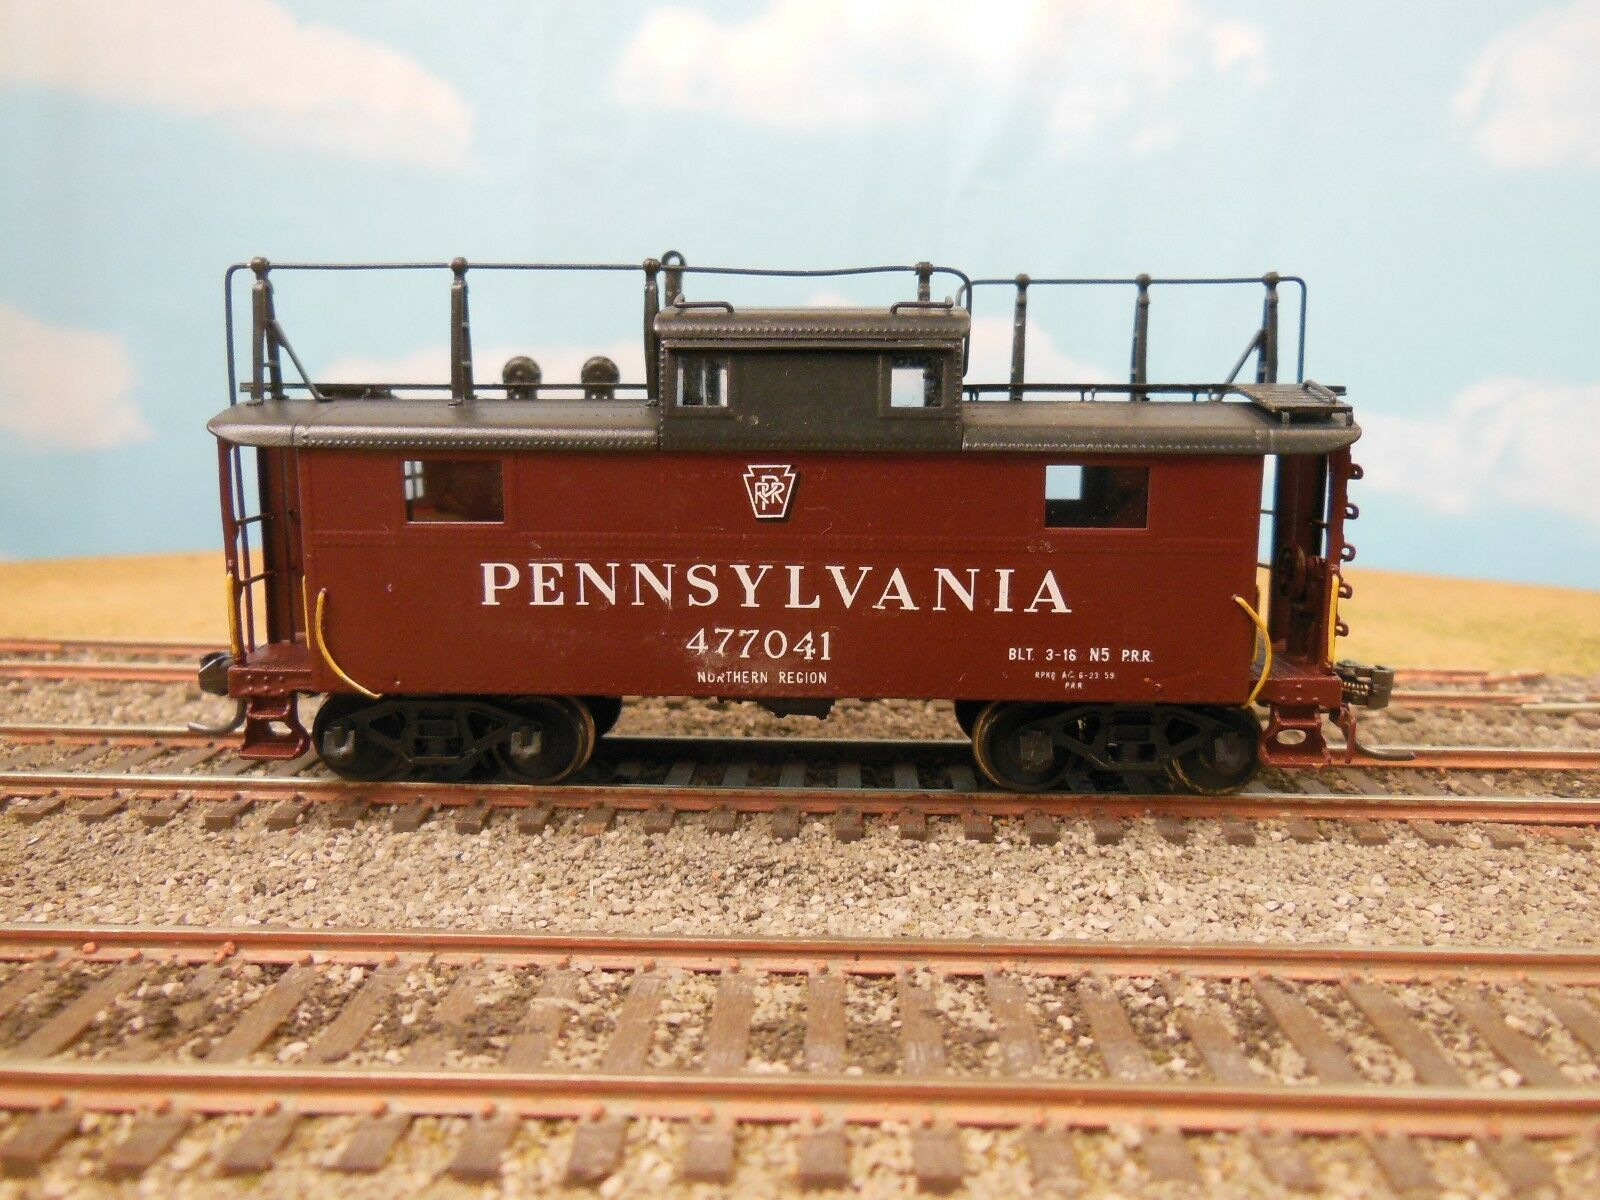 HO SCALE BRASS SUNSET MODELS PRR N5B W/ANTENNA STEEL CABIN CAR CABOOSE PAINTED